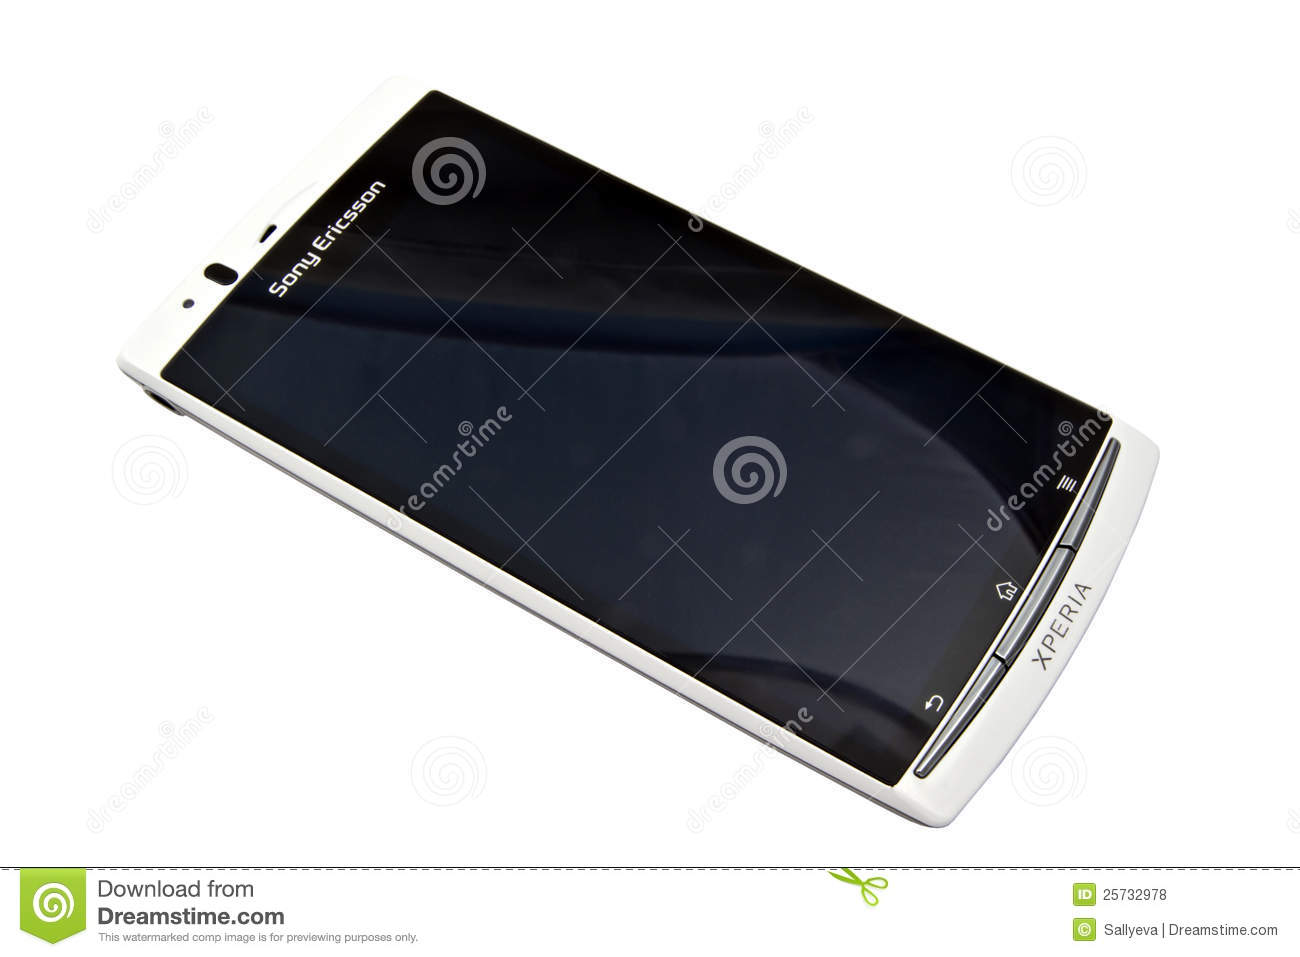 Sony ericsson clipart download.